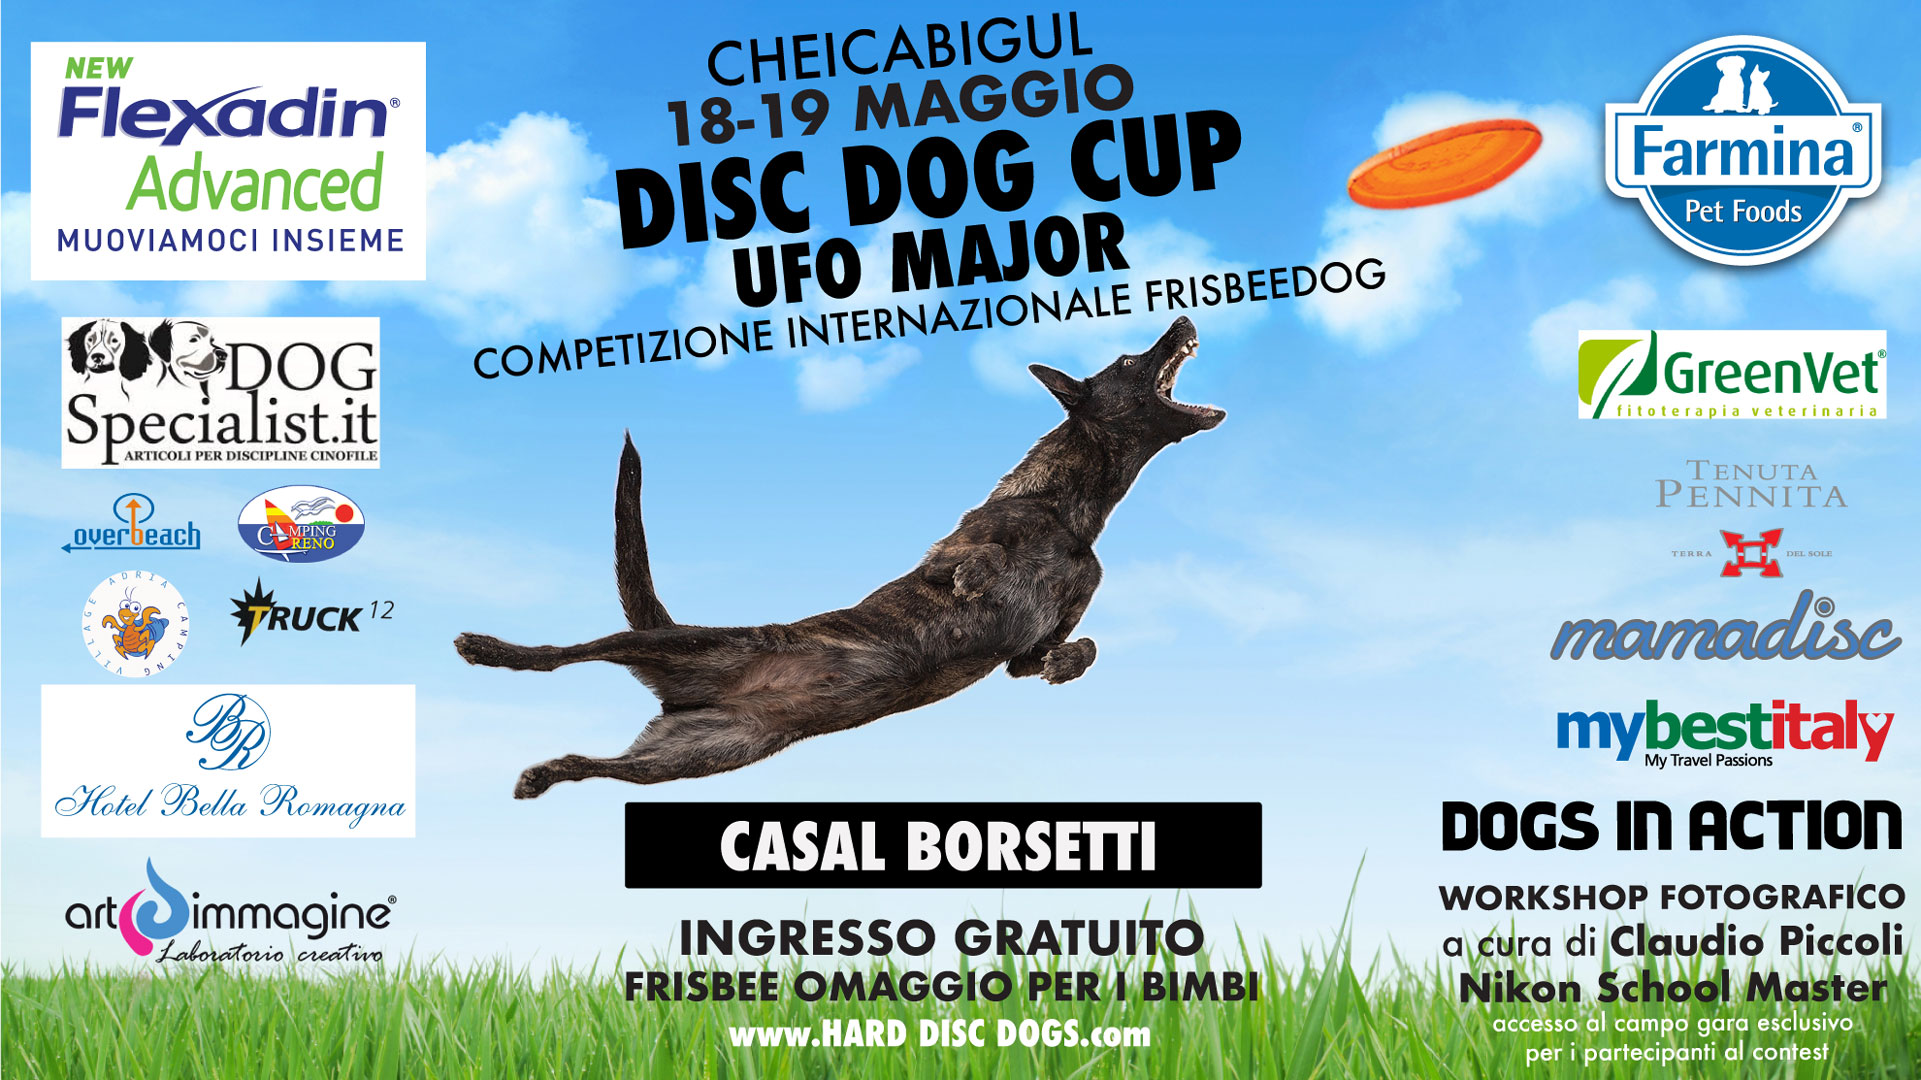 Cheicabigul Disc Dog Cup UFO Major 2019